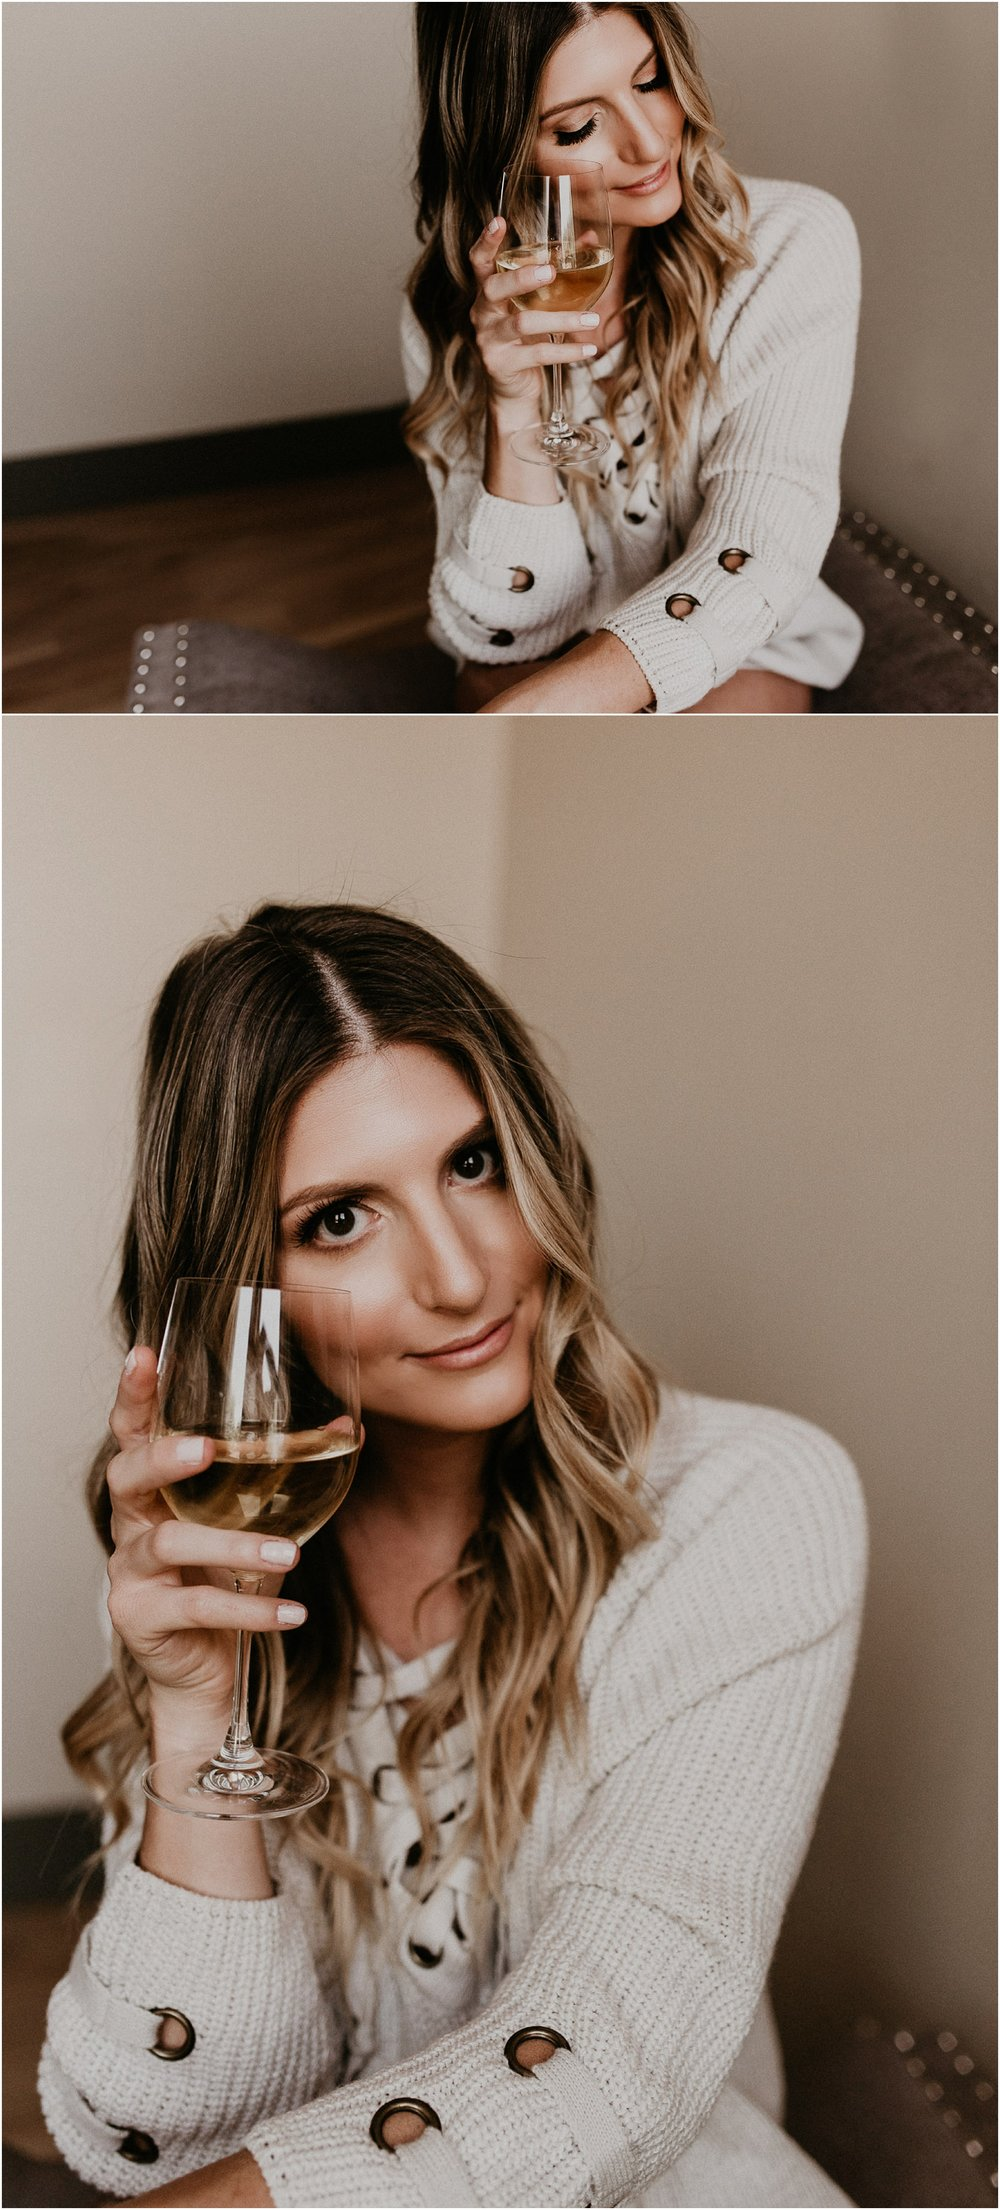 Boise Boudoir Photographer Makayla Madden Photography Award Winning Idaho Photographer Boudoir By Kayla Meridian Boudoir Lifestyle Boudoir Wine Lover Cozy Sweater Boudoir Ideas